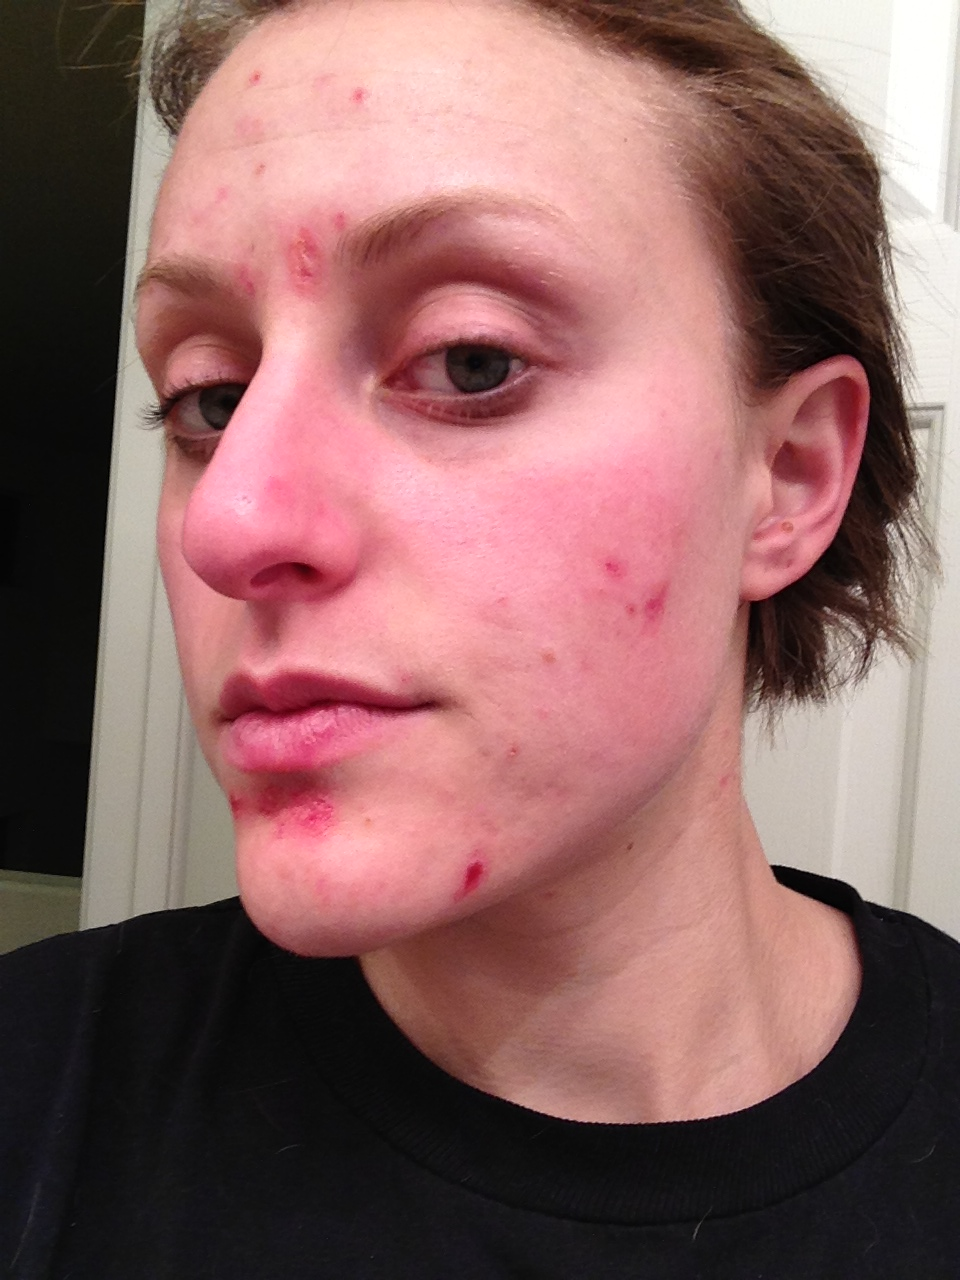 Facial scarring from acne — pic 2